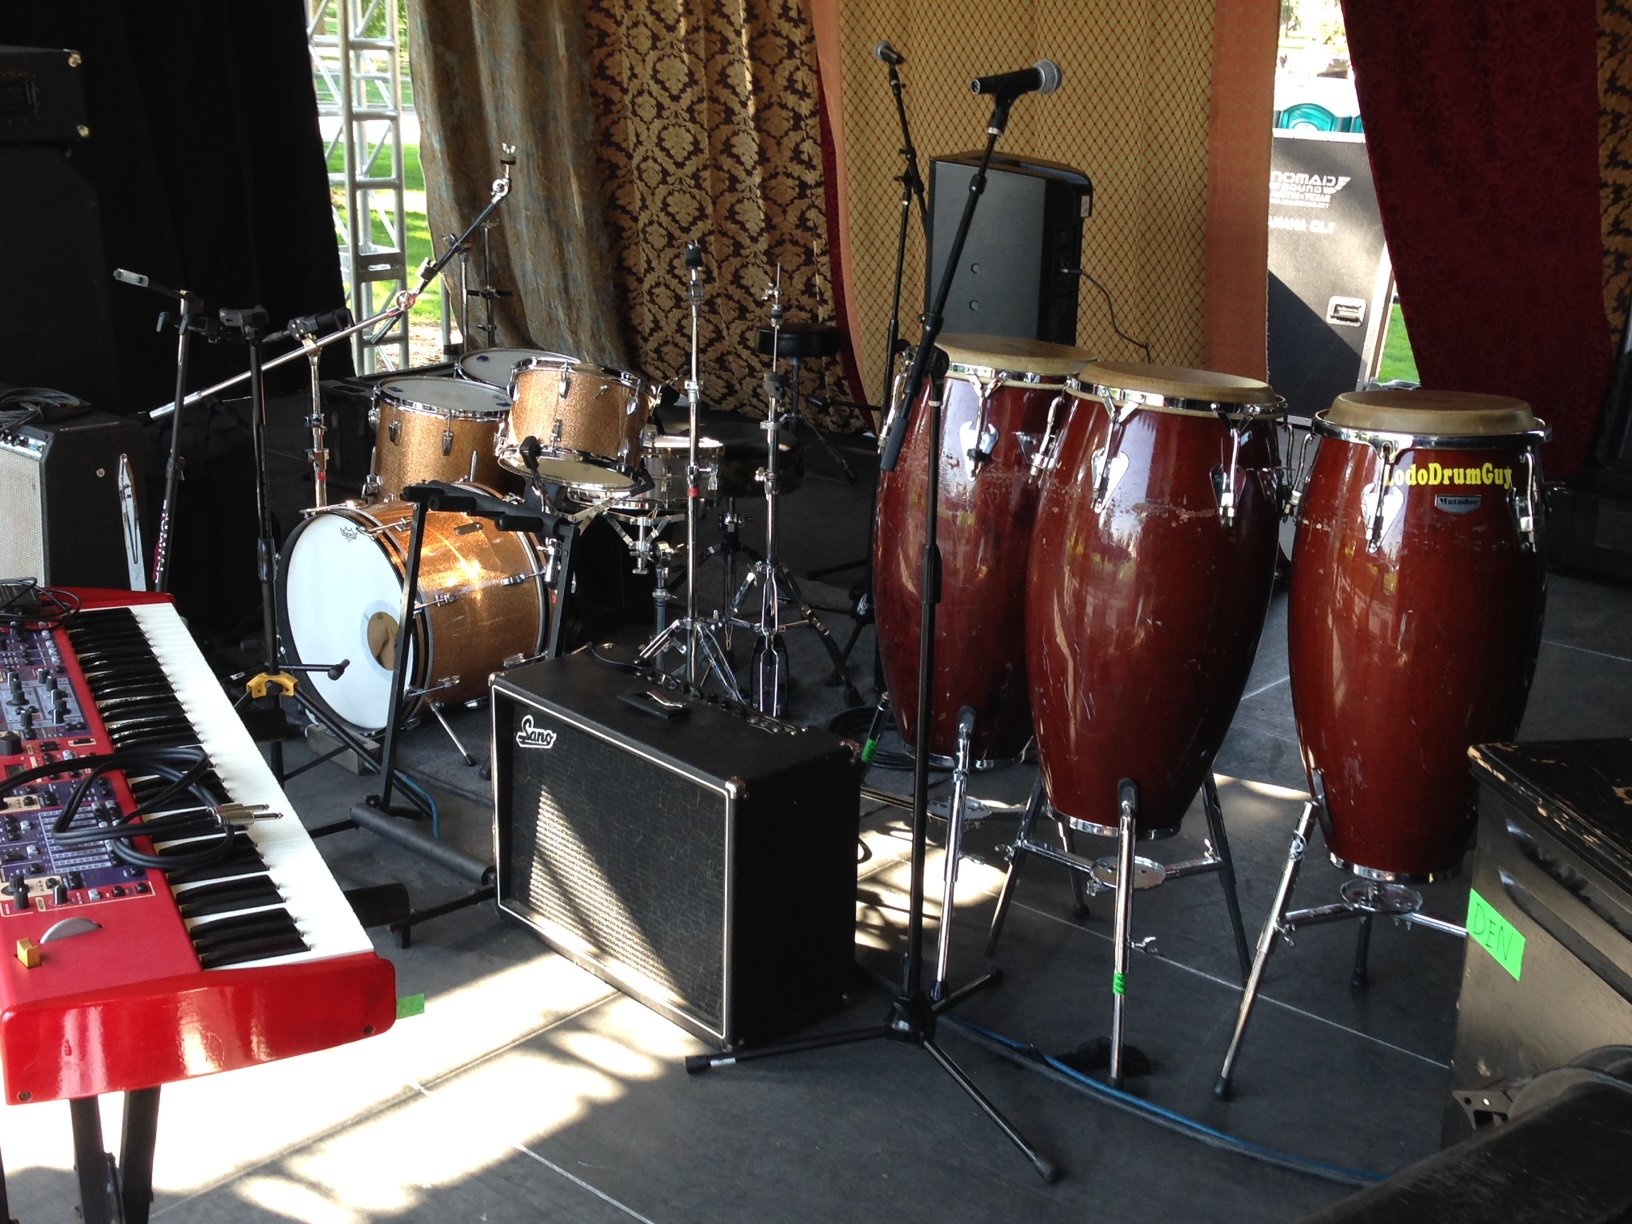 The '65 vintage Ludwig Super Classic set and congas that rounded out the backline for New Belgium's Tour De Fat in Denver's City Park.